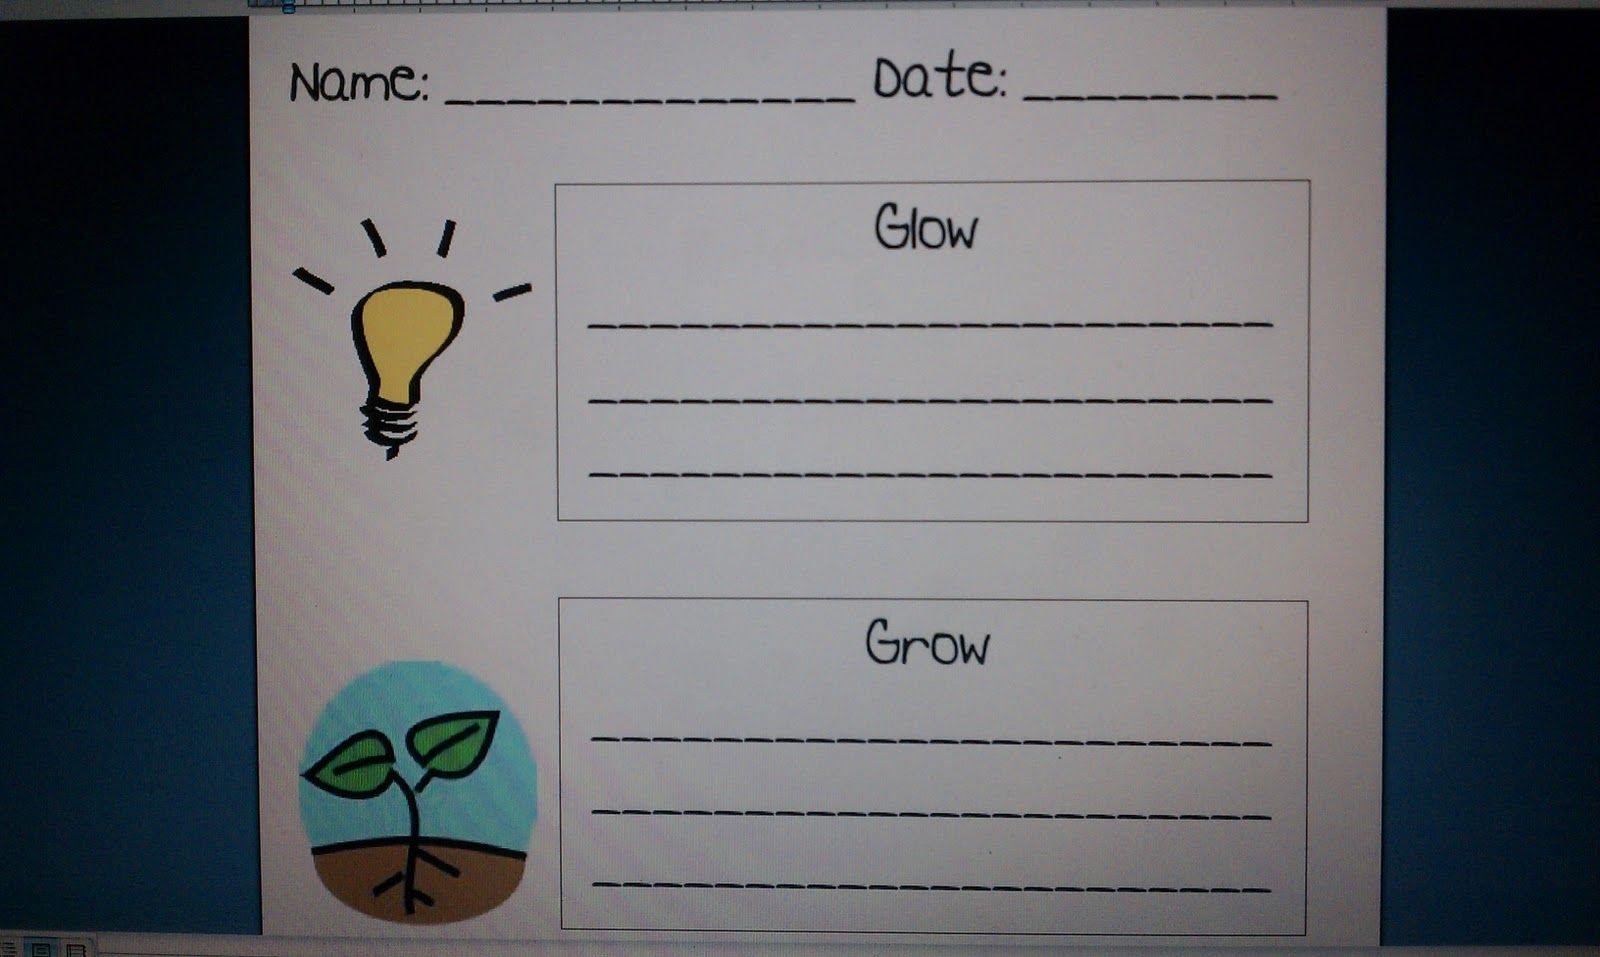 glow and grow for parent teacher conferences write ways in which